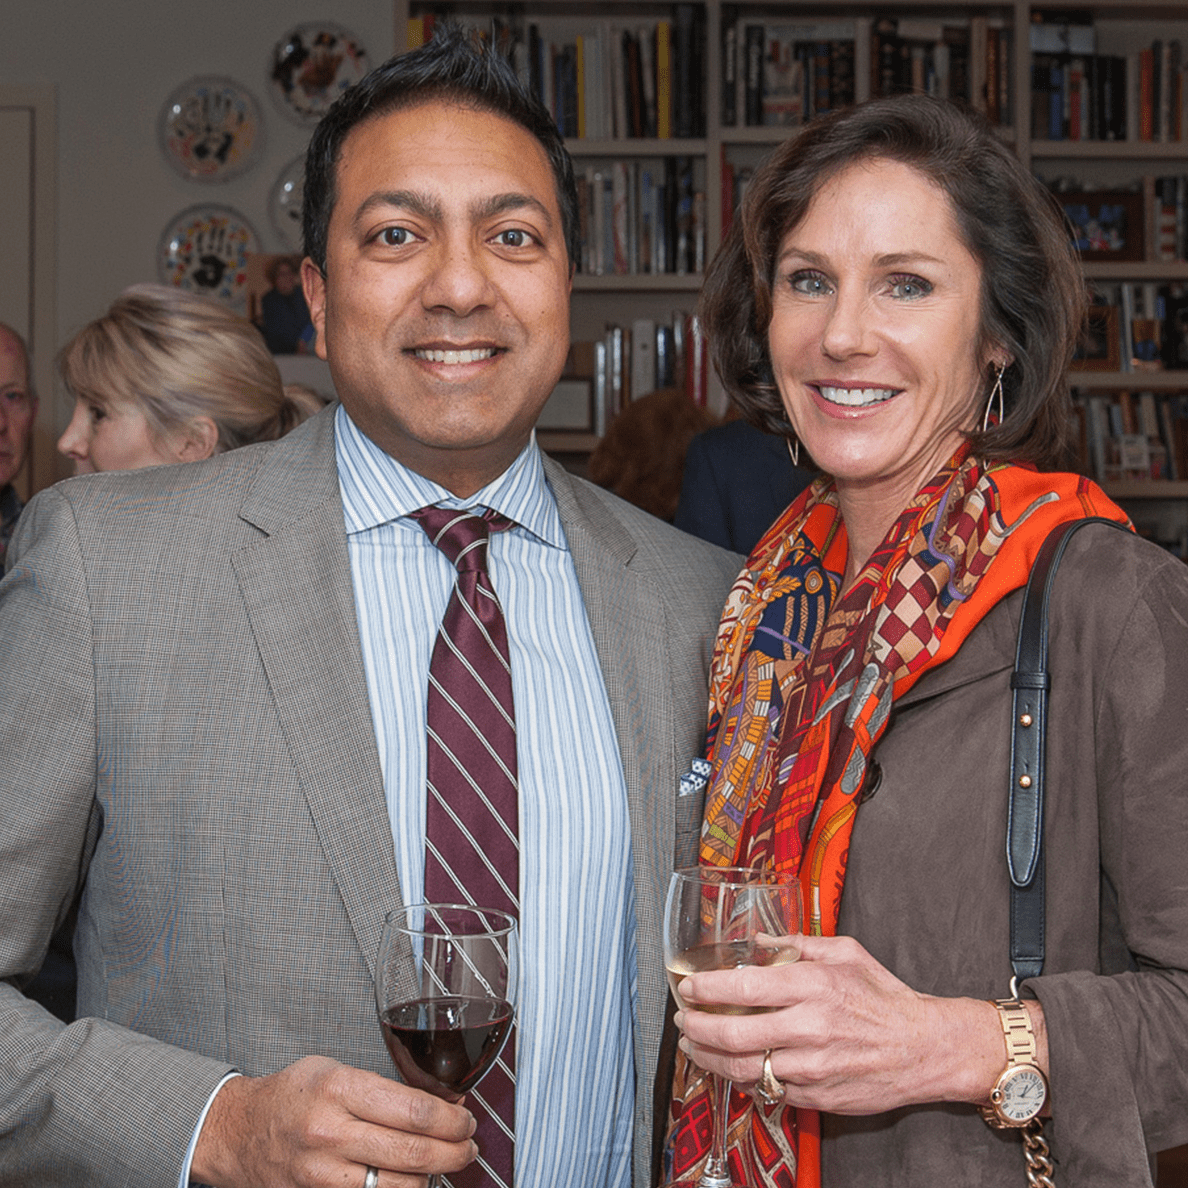 Houston, Da Camera VIP launch event for Sarah's Marcel Proust Project, Ab Sengupta, Heidi Gerger